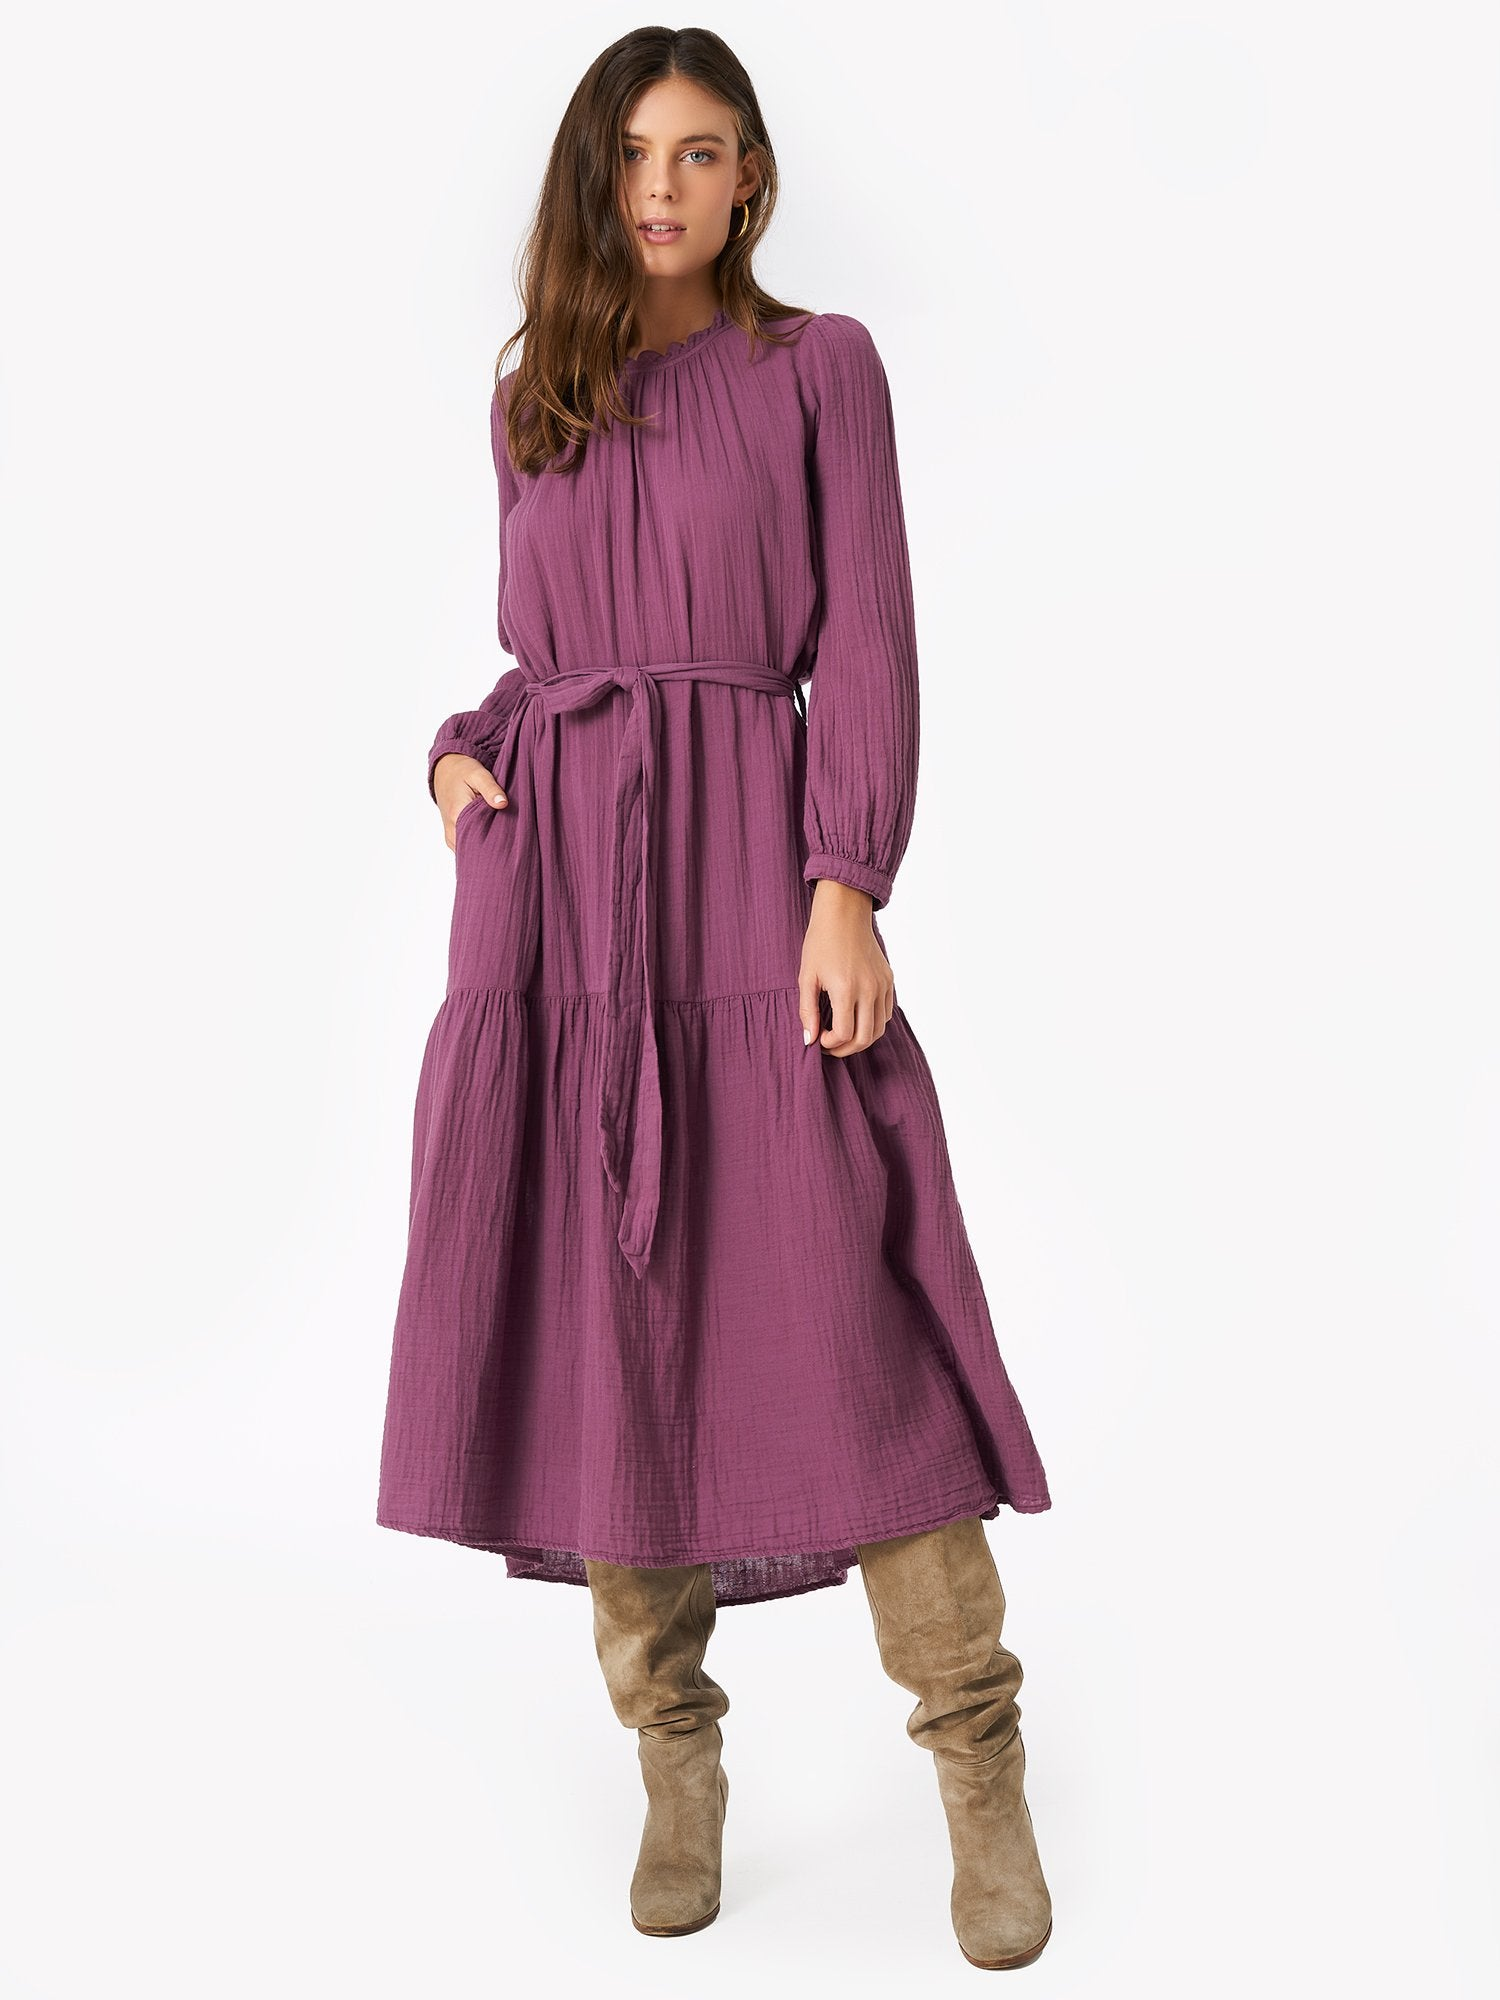 The Luna Dress in Smoky Mauve